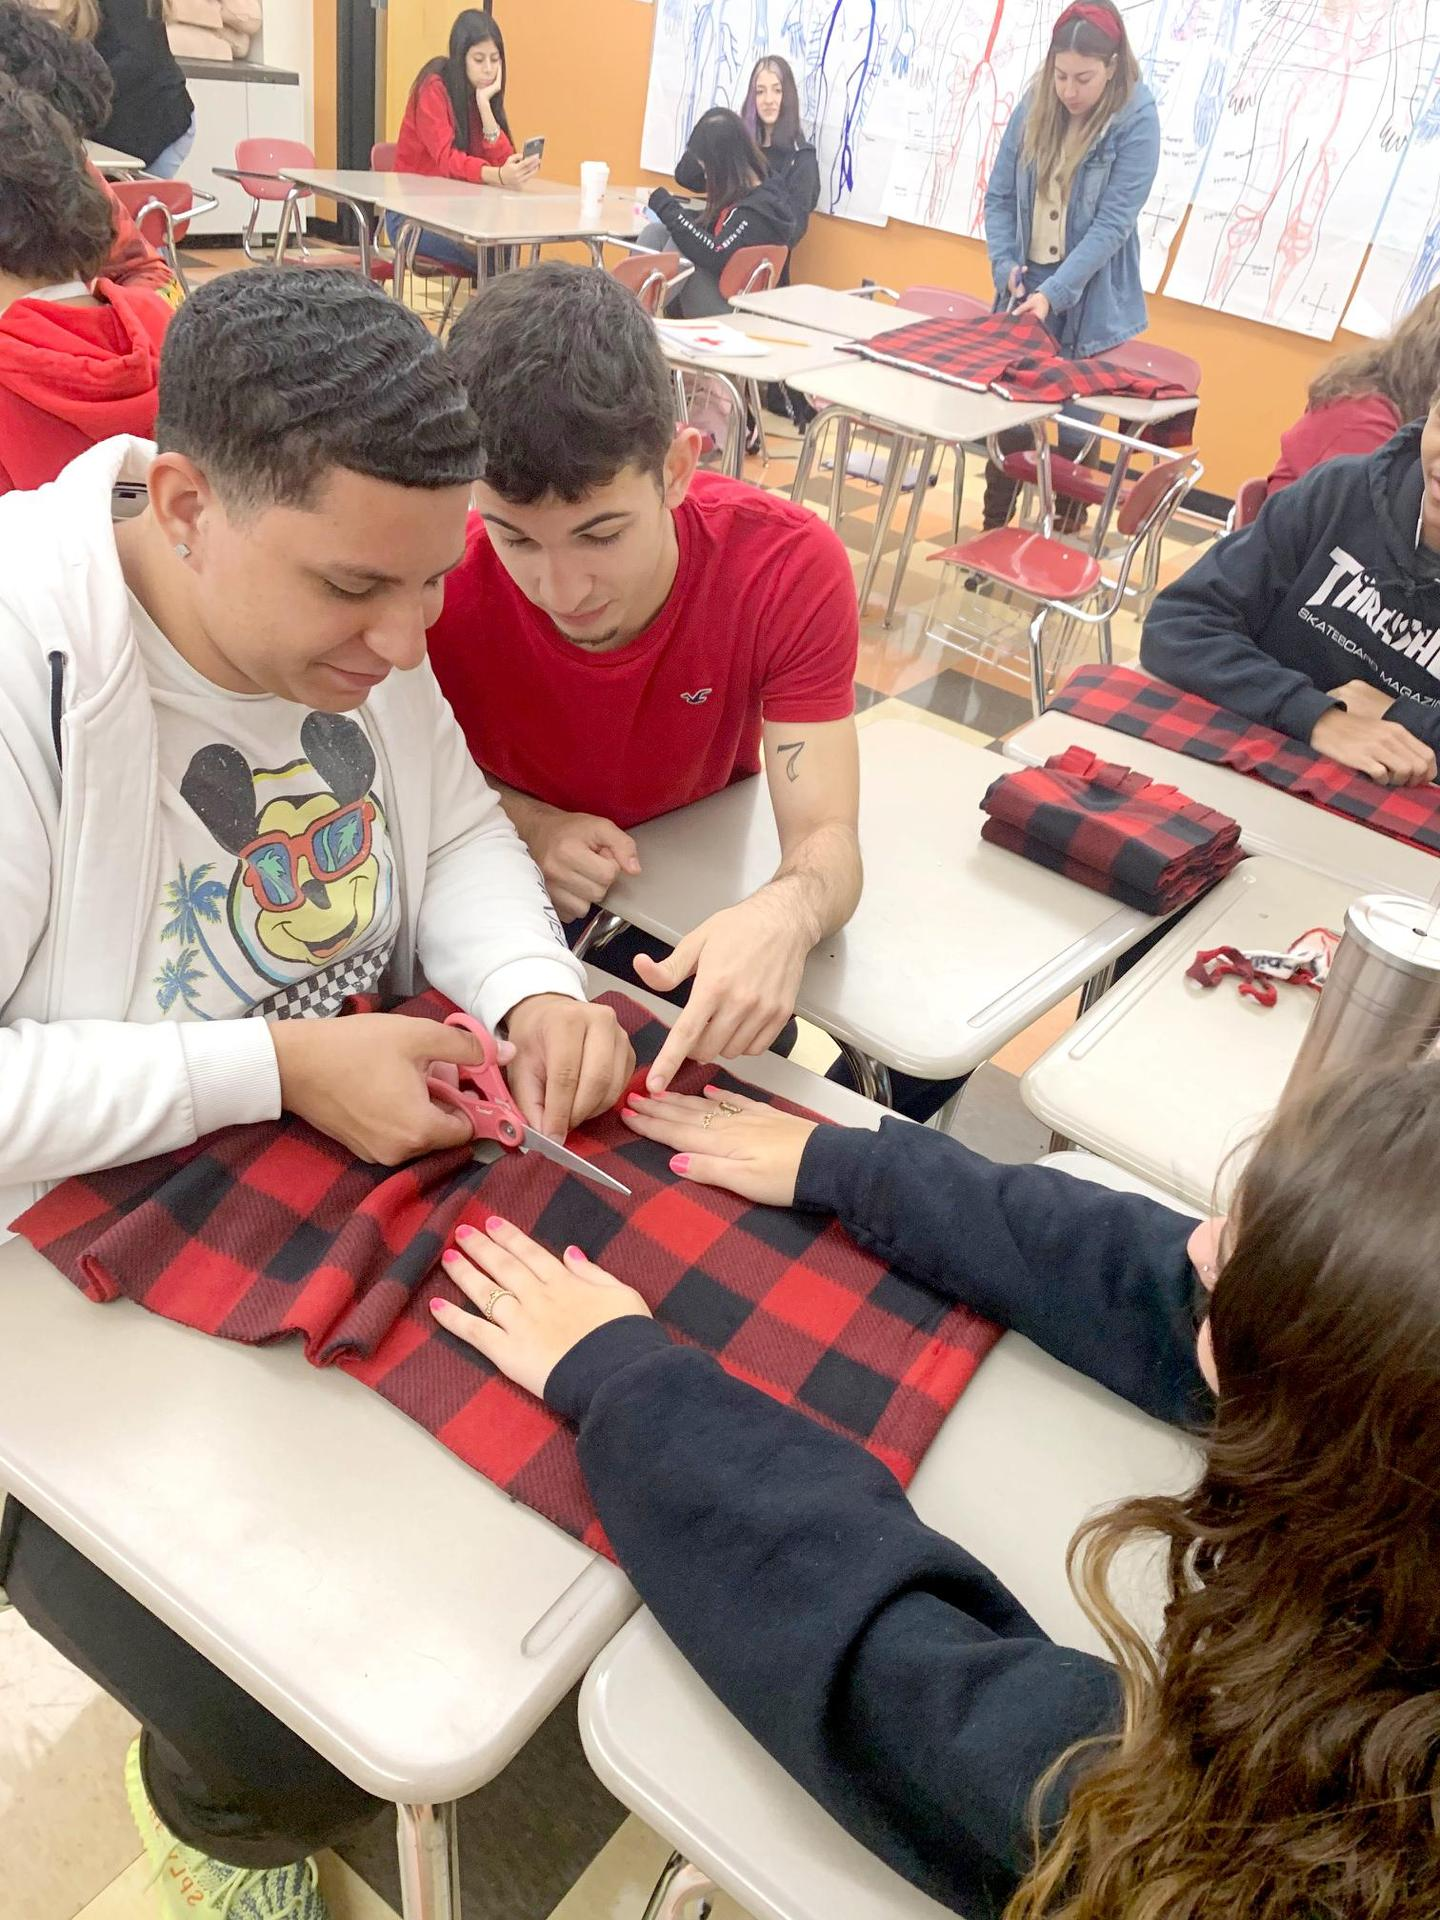 Two students hold a piece of fabric while a third cuts it